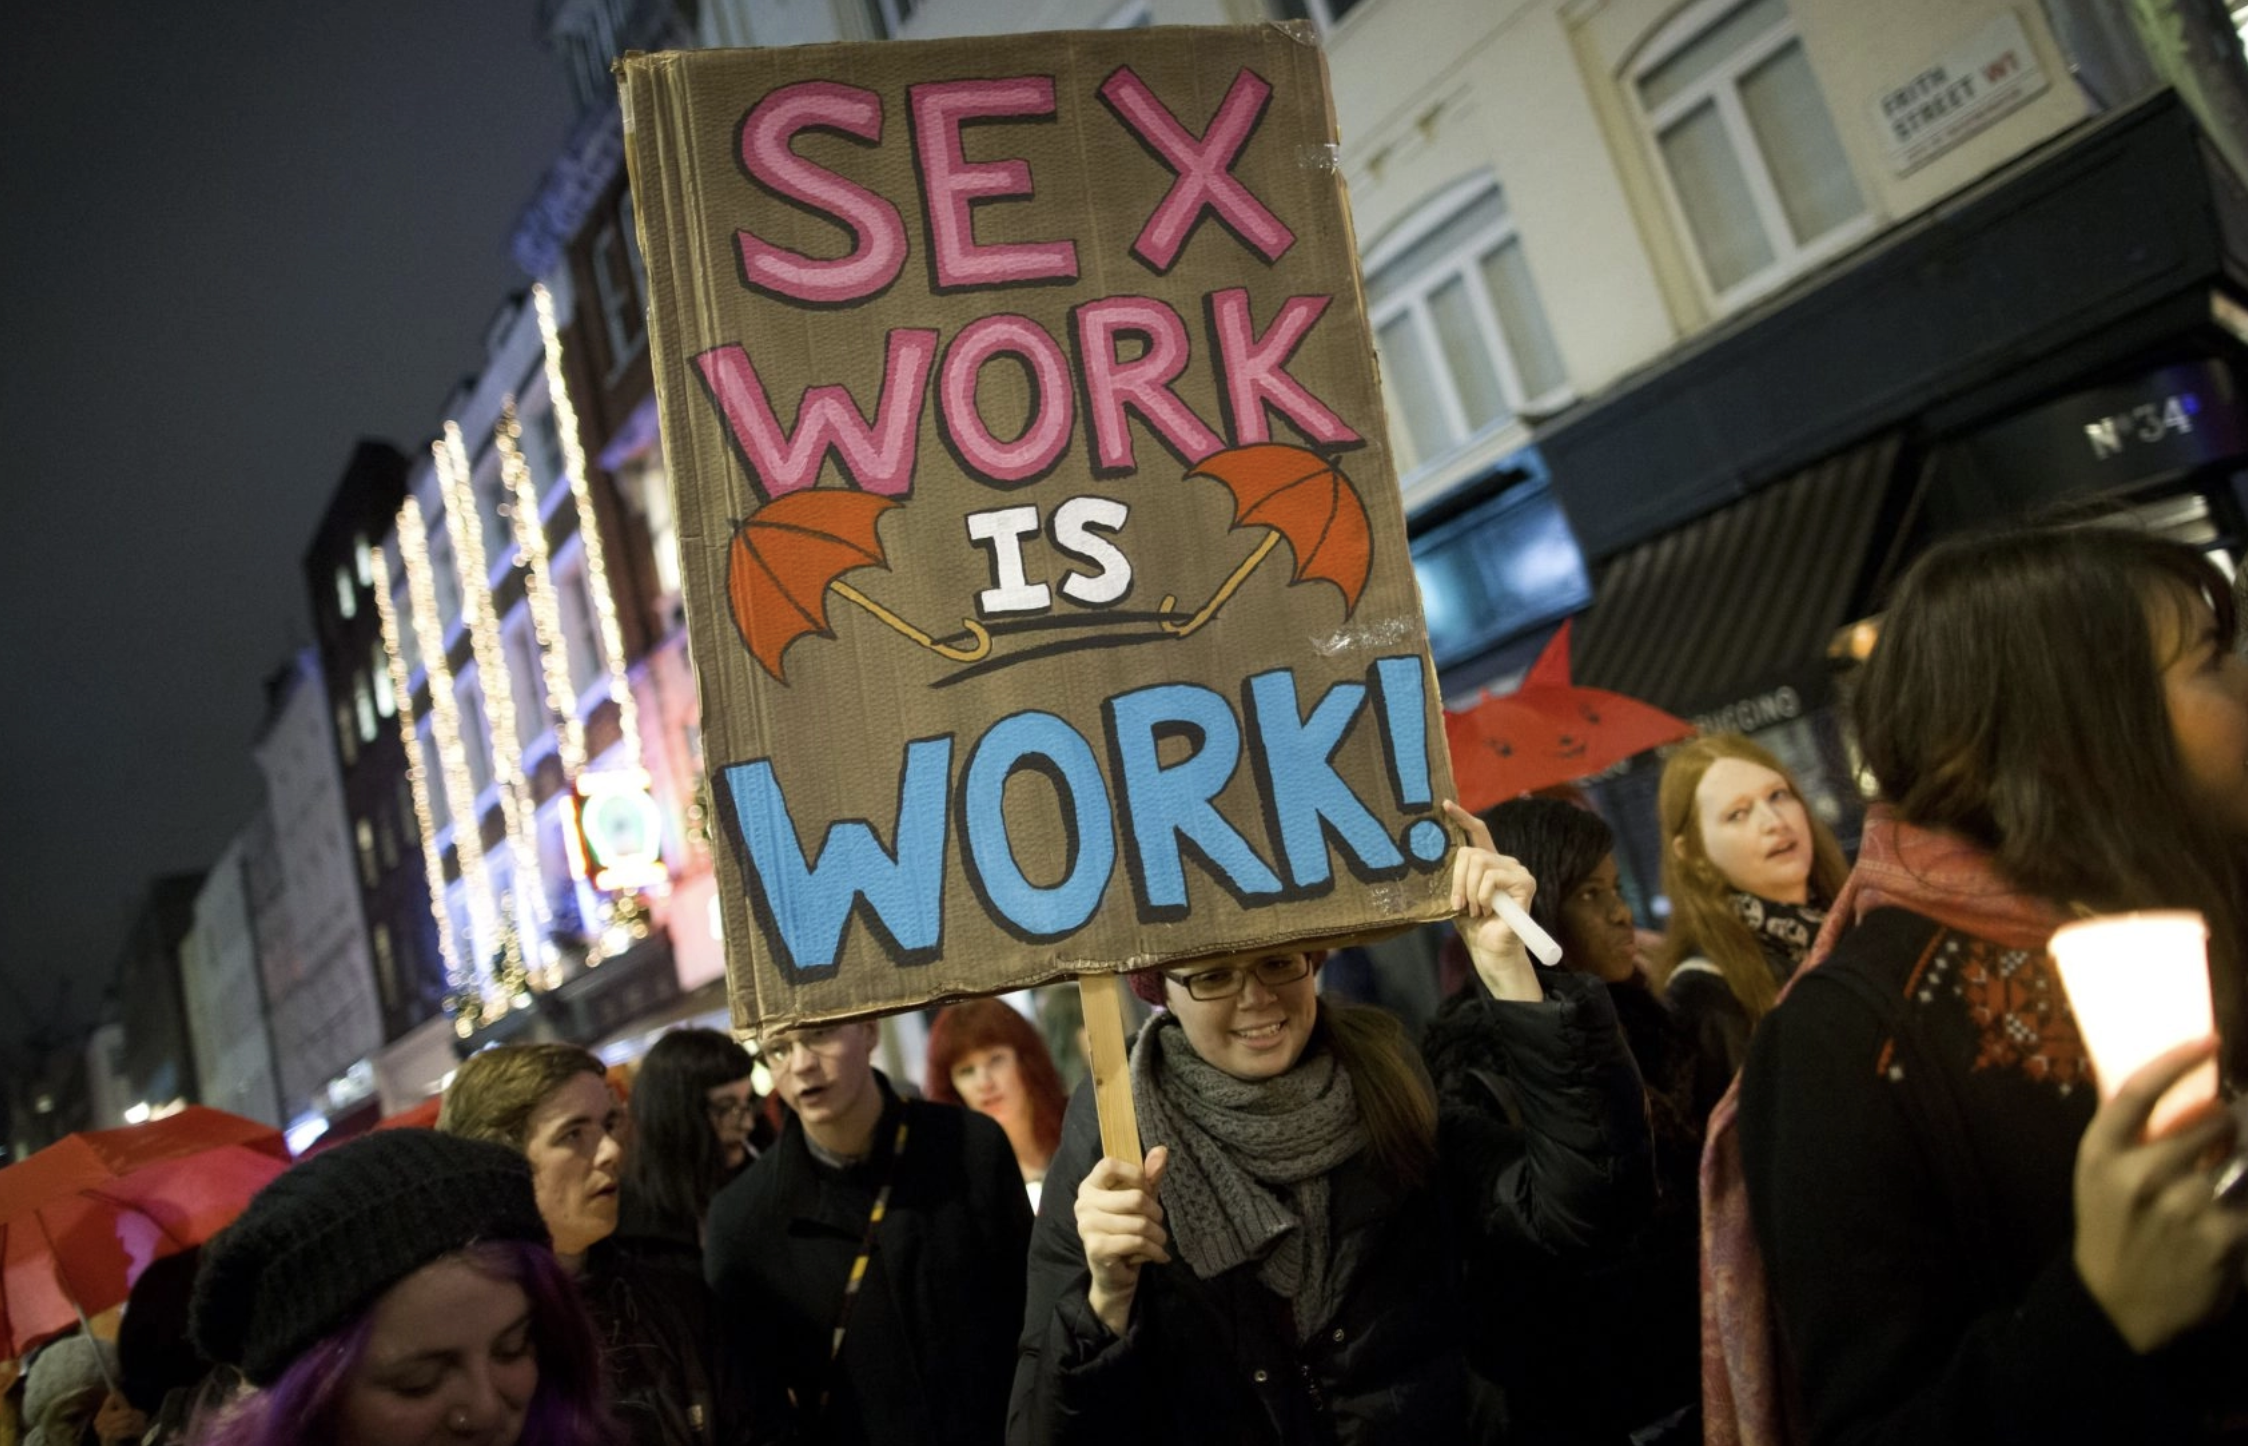 A protester holding a placard reading 'Sex work is work' while marching through Soho, NY, United States